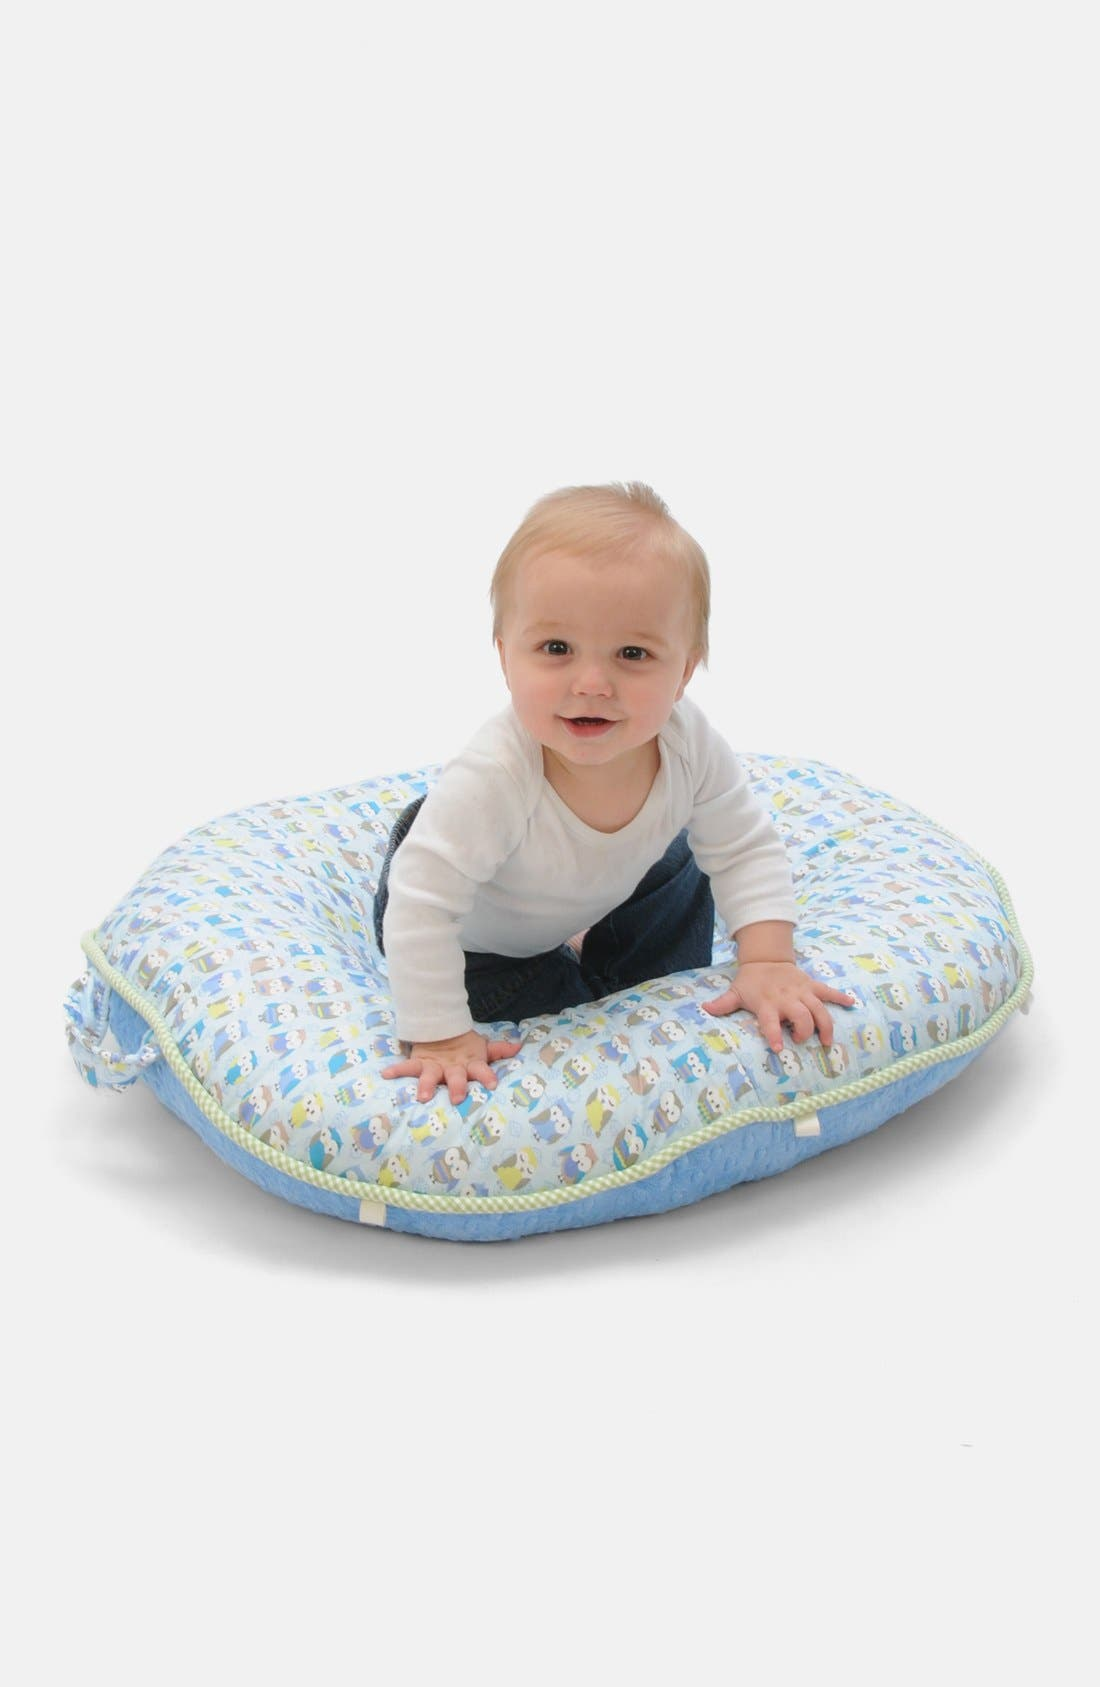 Alternate Image 1 Selected - Pello 'Pello - Hoo Loves Ya Boy' Portable Floor Pillow (Baby)